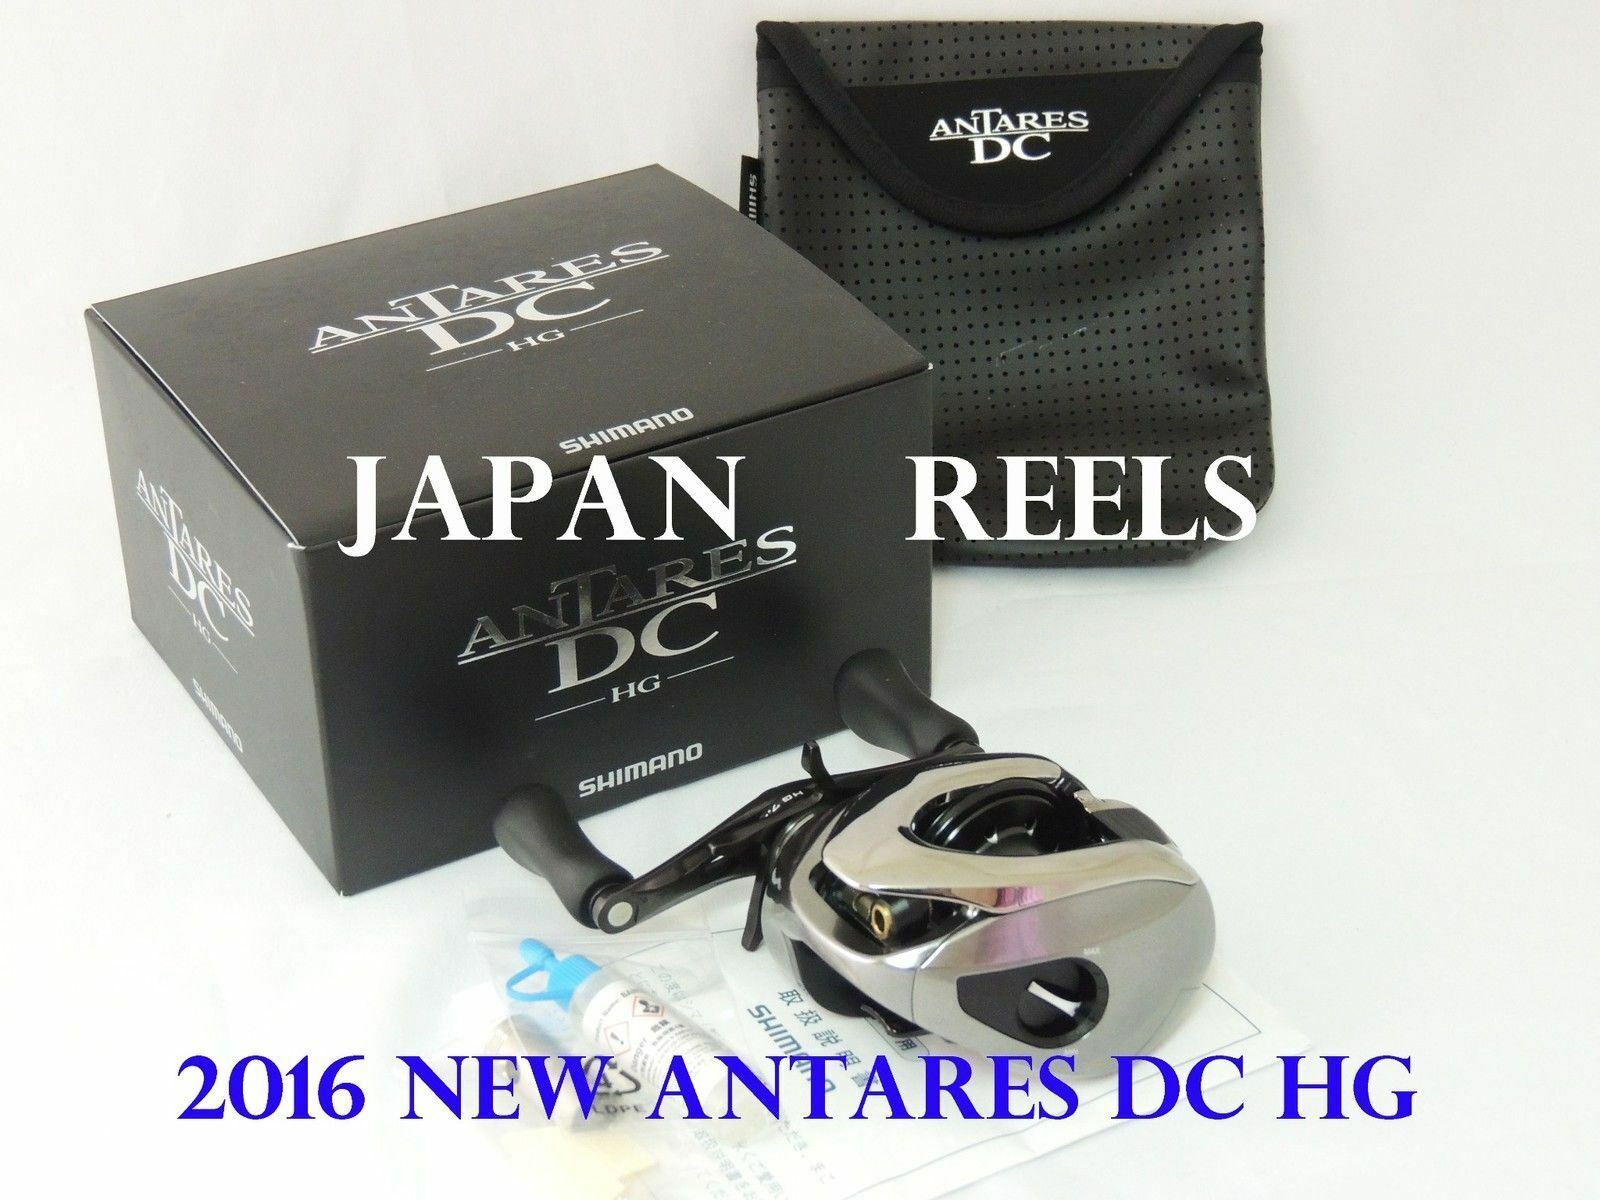 NEW SHIMANO 16 ANTARES DC HG RIGHT HANDLE BAITCASTING REEL JAPAN FAST DELIVERY